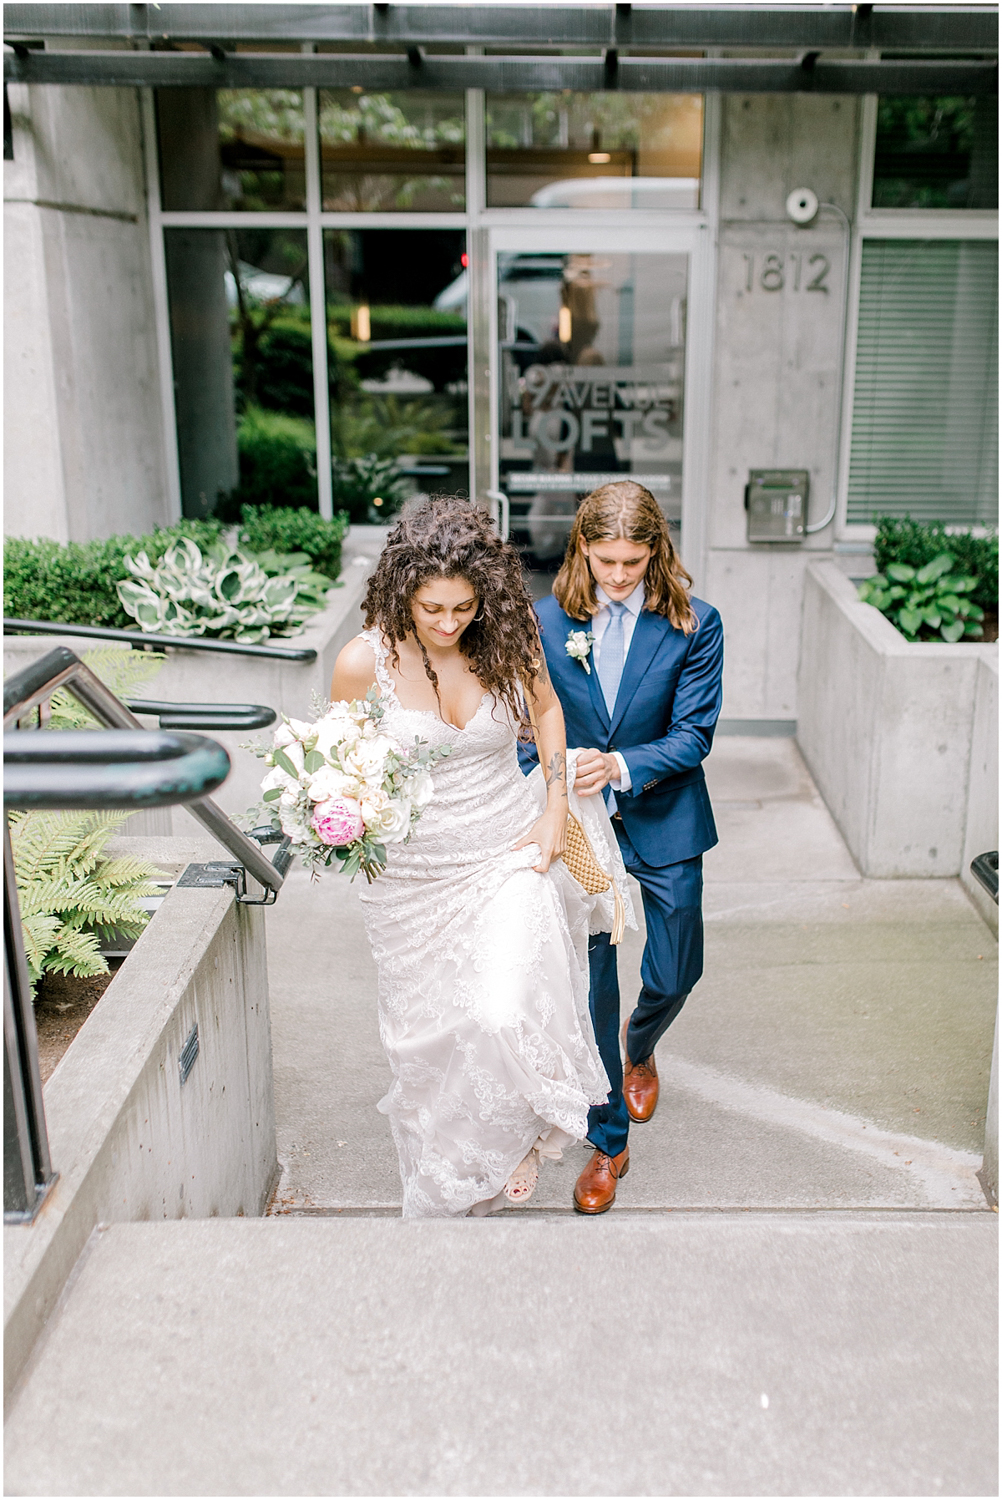 Seattle City Hall Courthouse Wedding Elopement | Seattle Wedding Photographer | Emma Rose Company | Downtown Seattle Wedding Inspiration | Pacific Northwest Elopement | Courthouse Elopement in the City-22.jpg